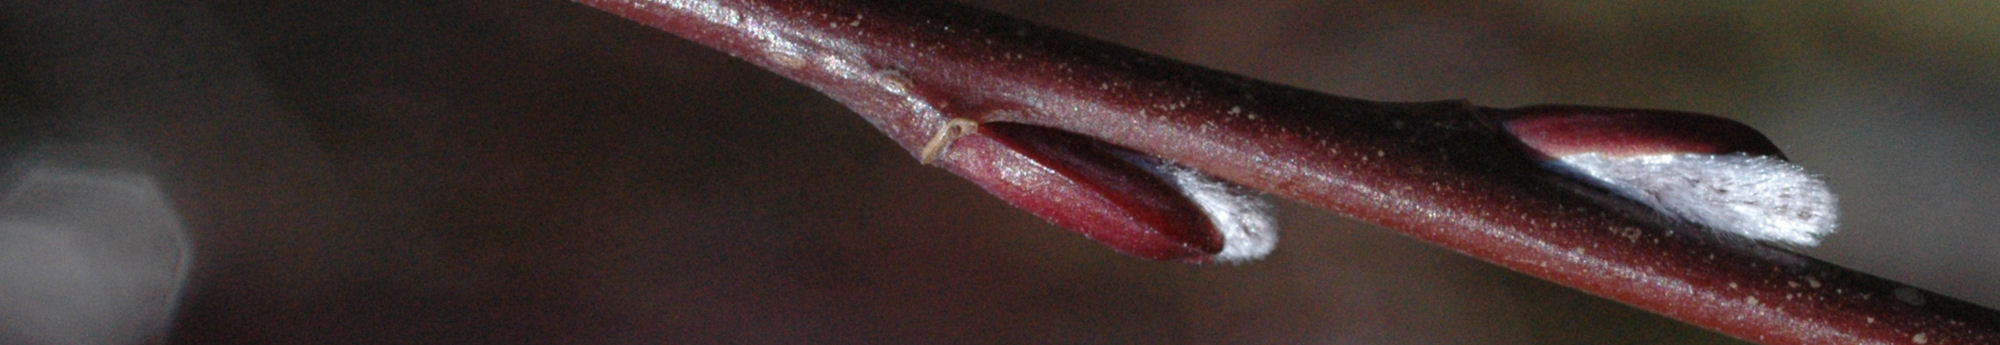 head_salix_purpurea_pendula